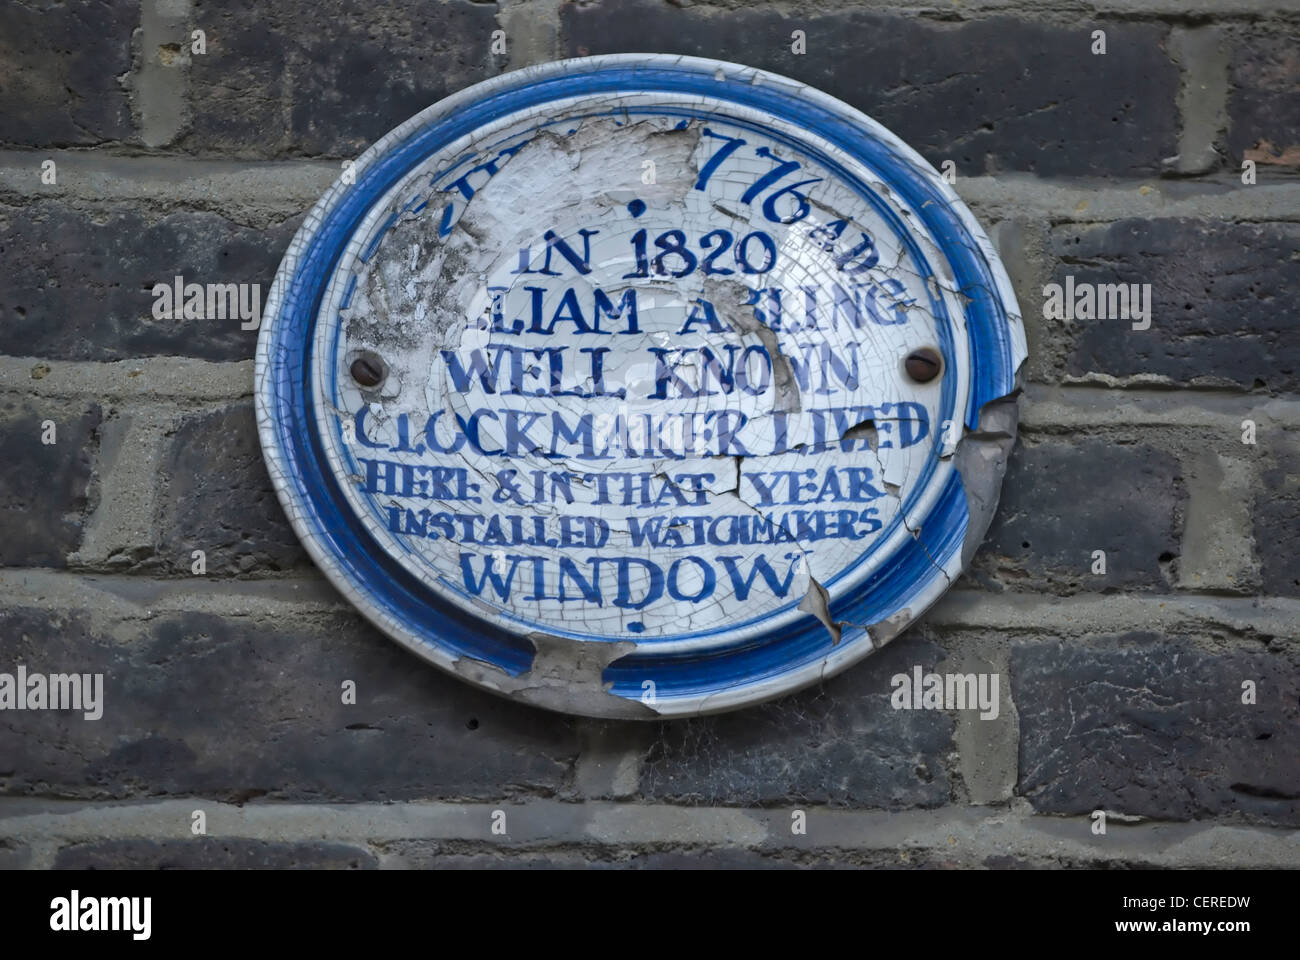 blue plaque marking a home of clockmaker william abling, islington, london, england - Stock Image